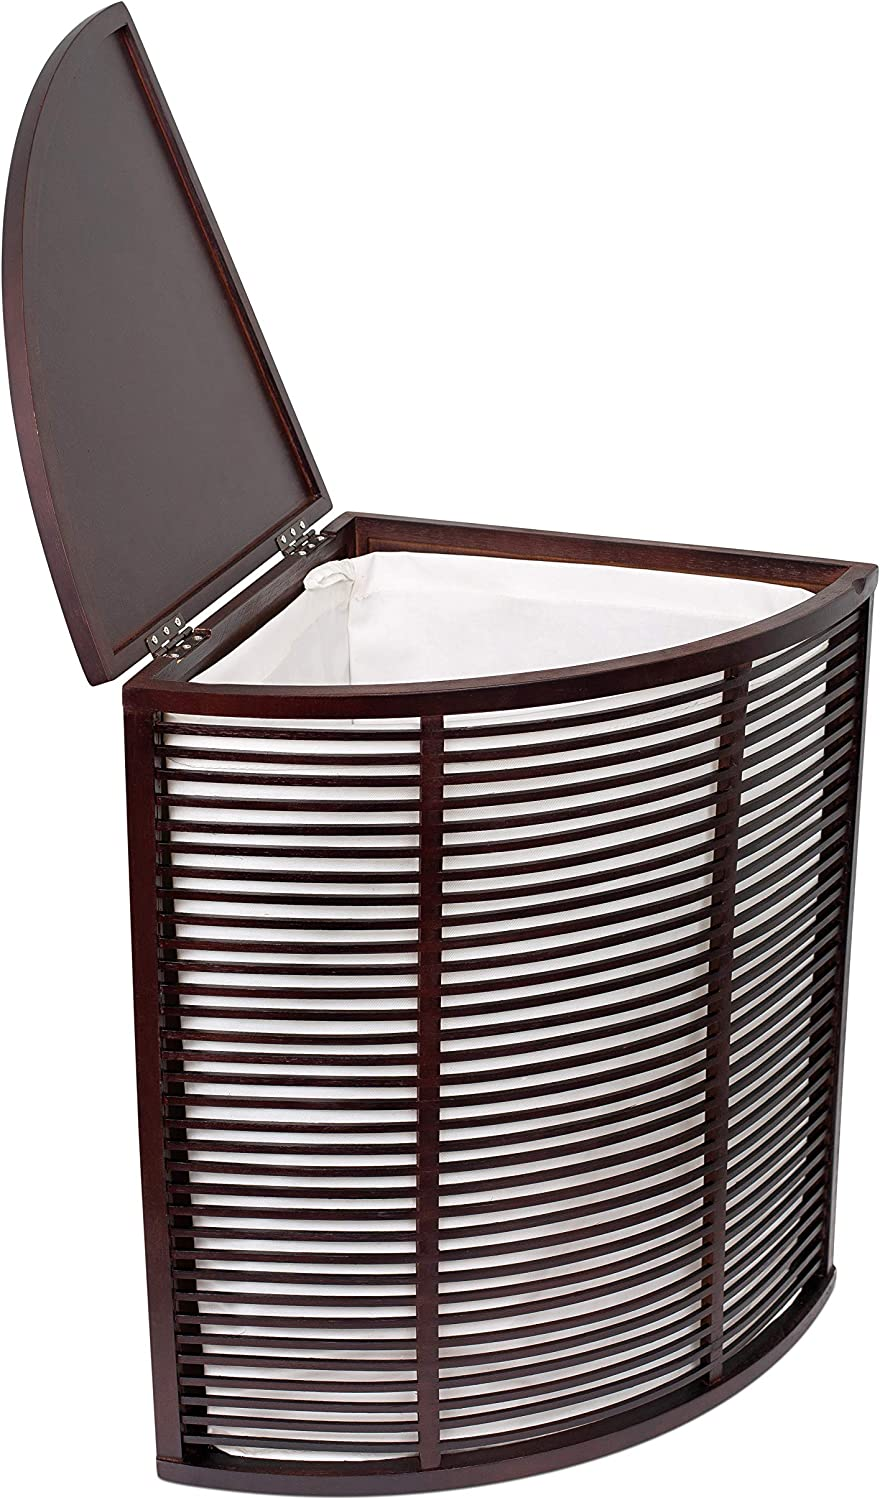 BIRDROCK HOME Compact Corner Laundry Hamper with Lid and Removable Liner - Brown Bamboo - Easily Transport Laundry - Baby Dirty Clothes Bin Sorter Basket - Cut Out Handles